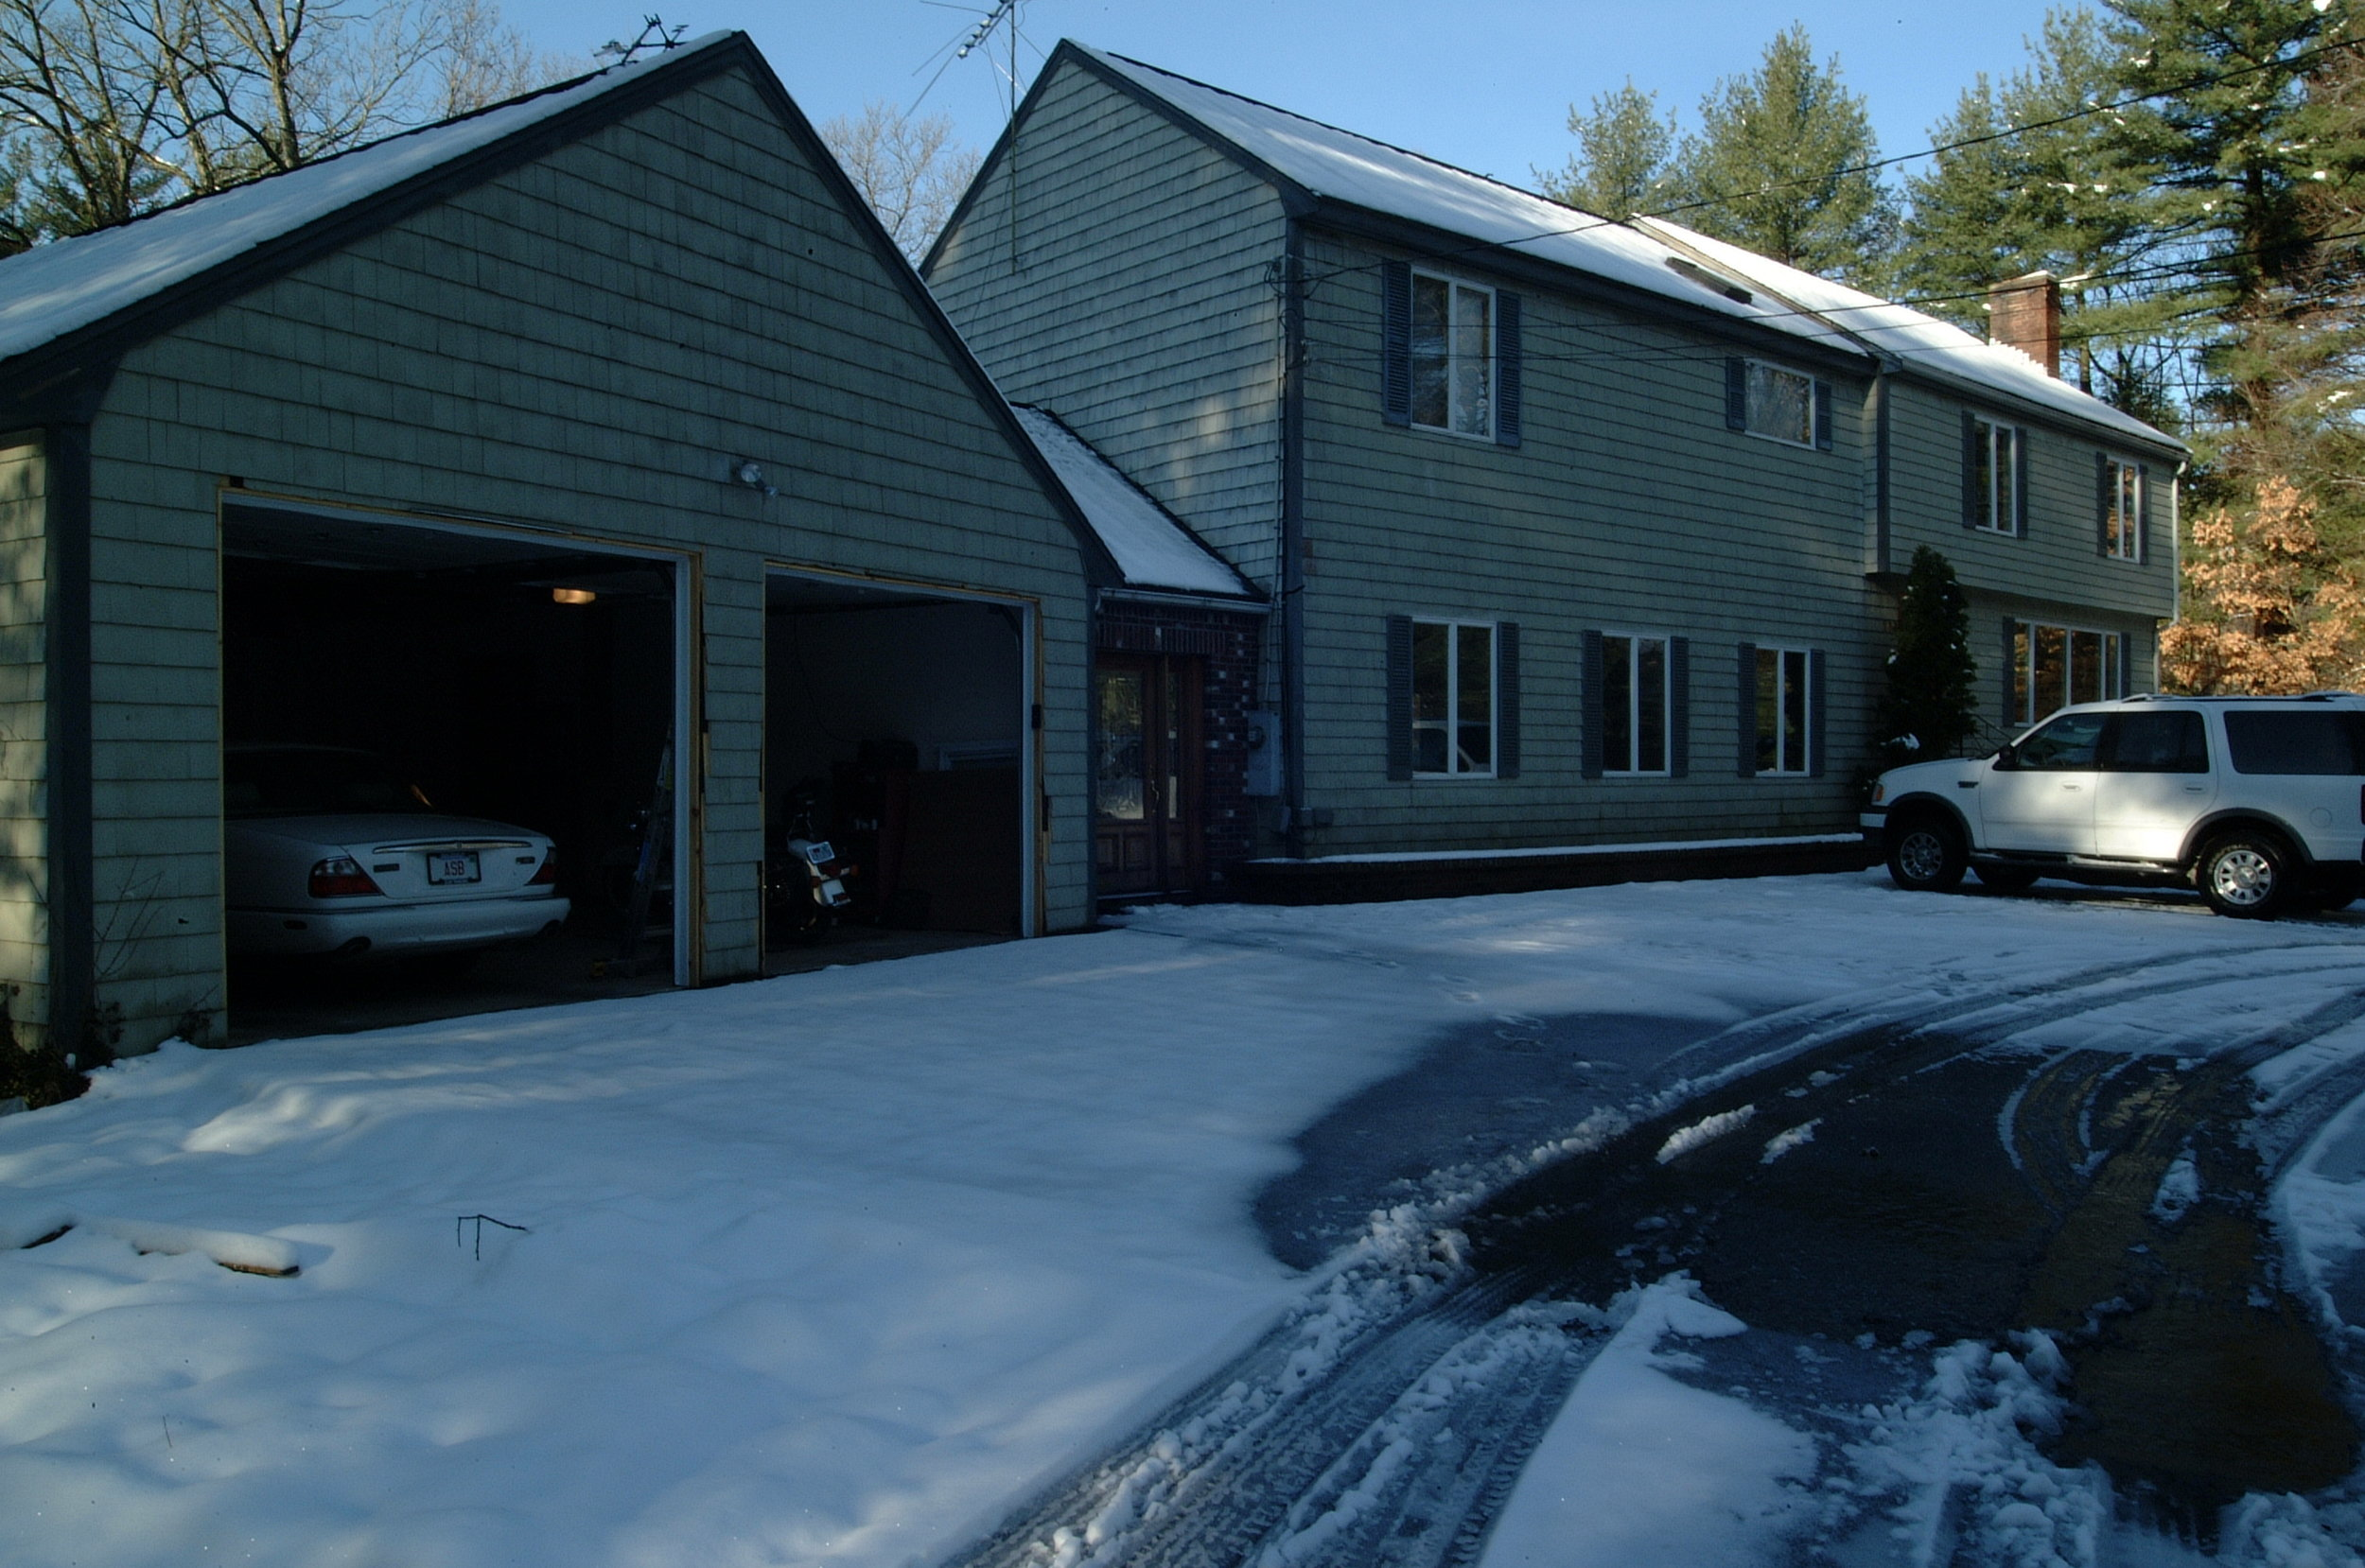 There is the old house in winter. The hell with that! Gimme Florida now!